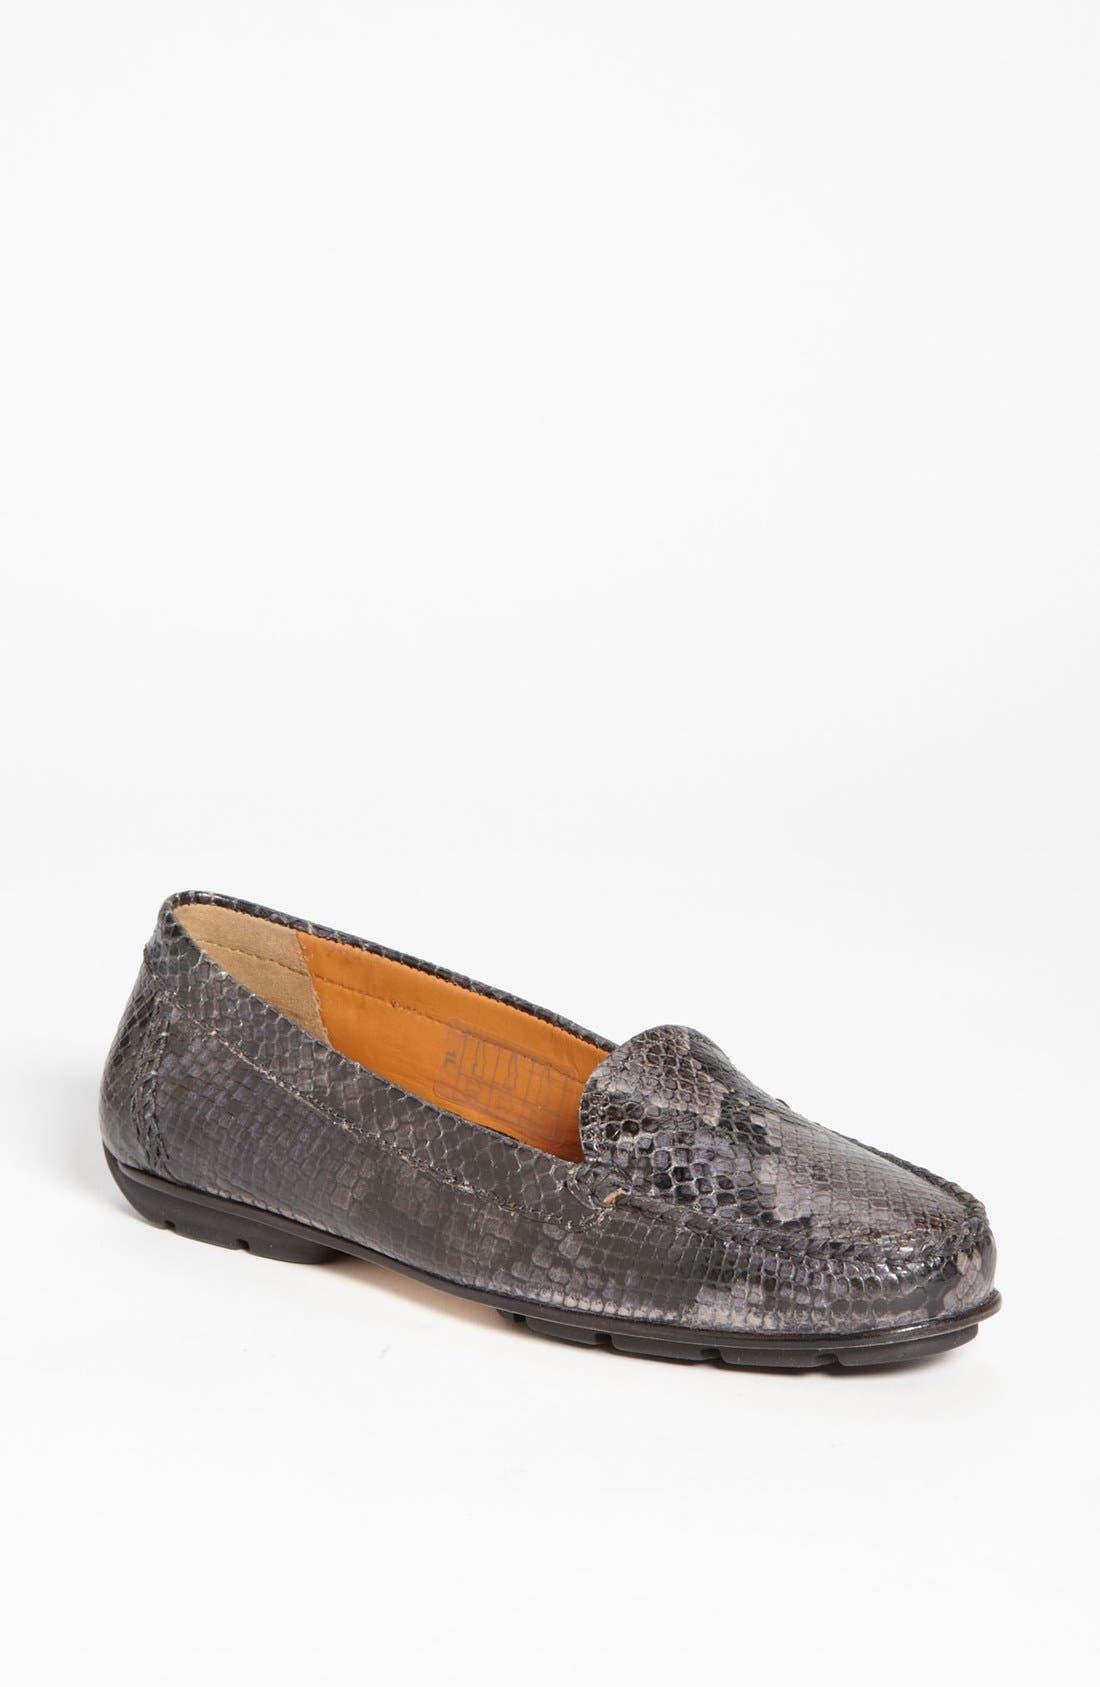 Alternate Image 1 Selected - Geox 'Italy' Snake Embossed Moccasin (Online Only Color)